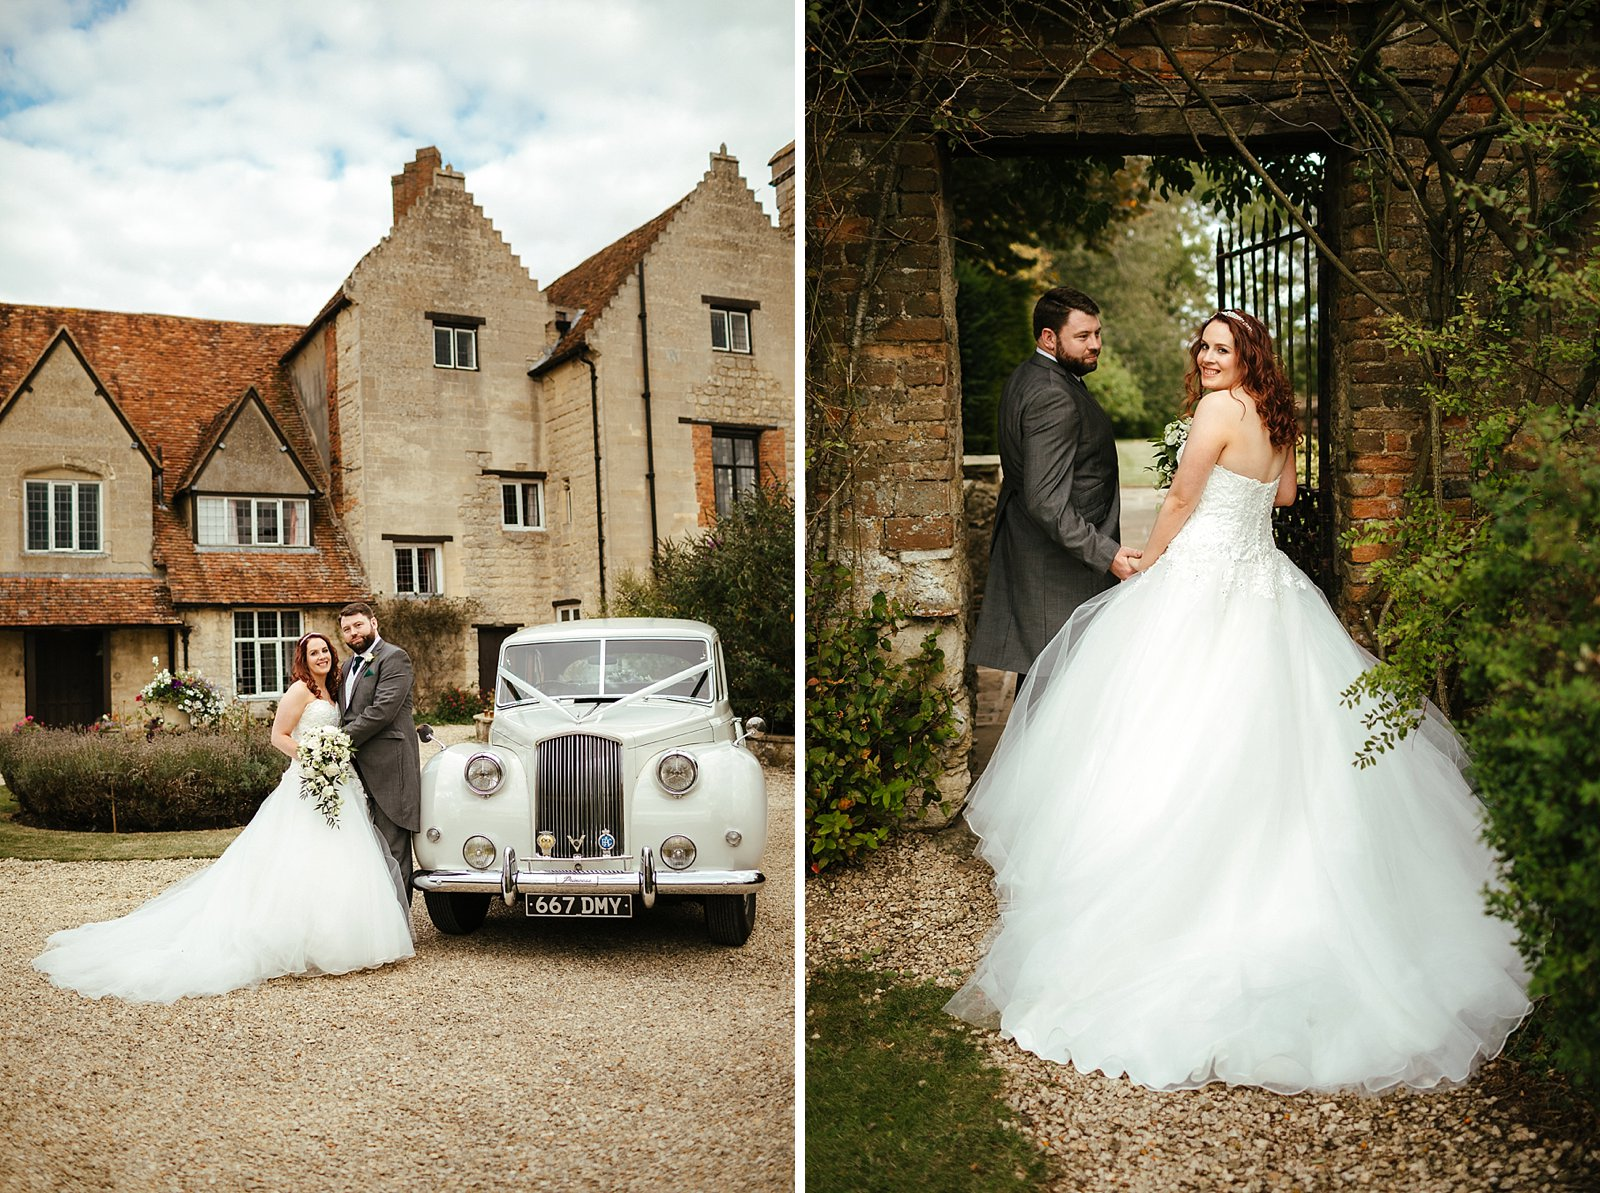 Bride and groom in front of the Manor House photo